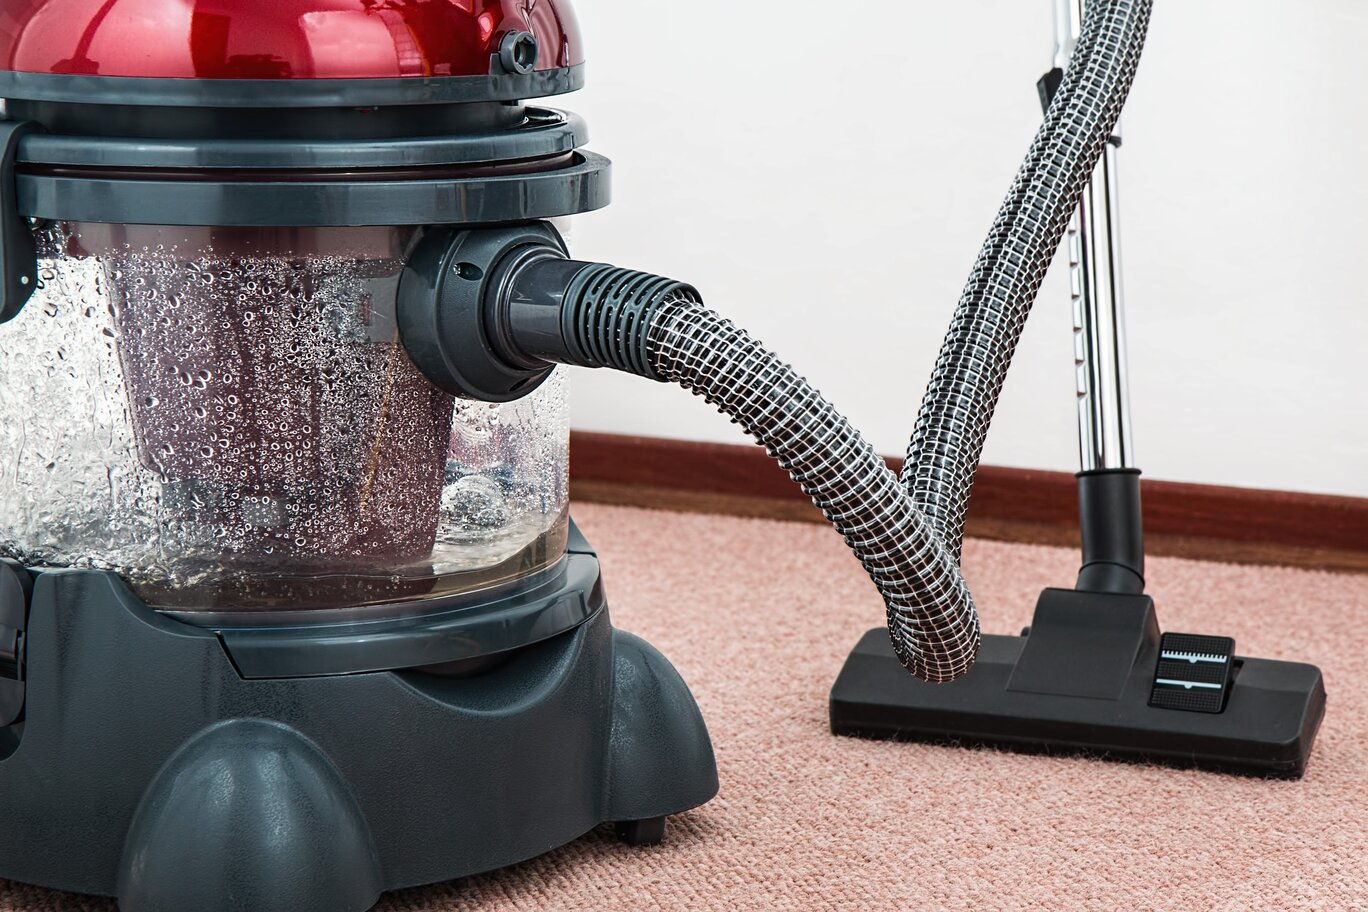 Carpet Cleaning Crash Course: How Often Should I Clean It?